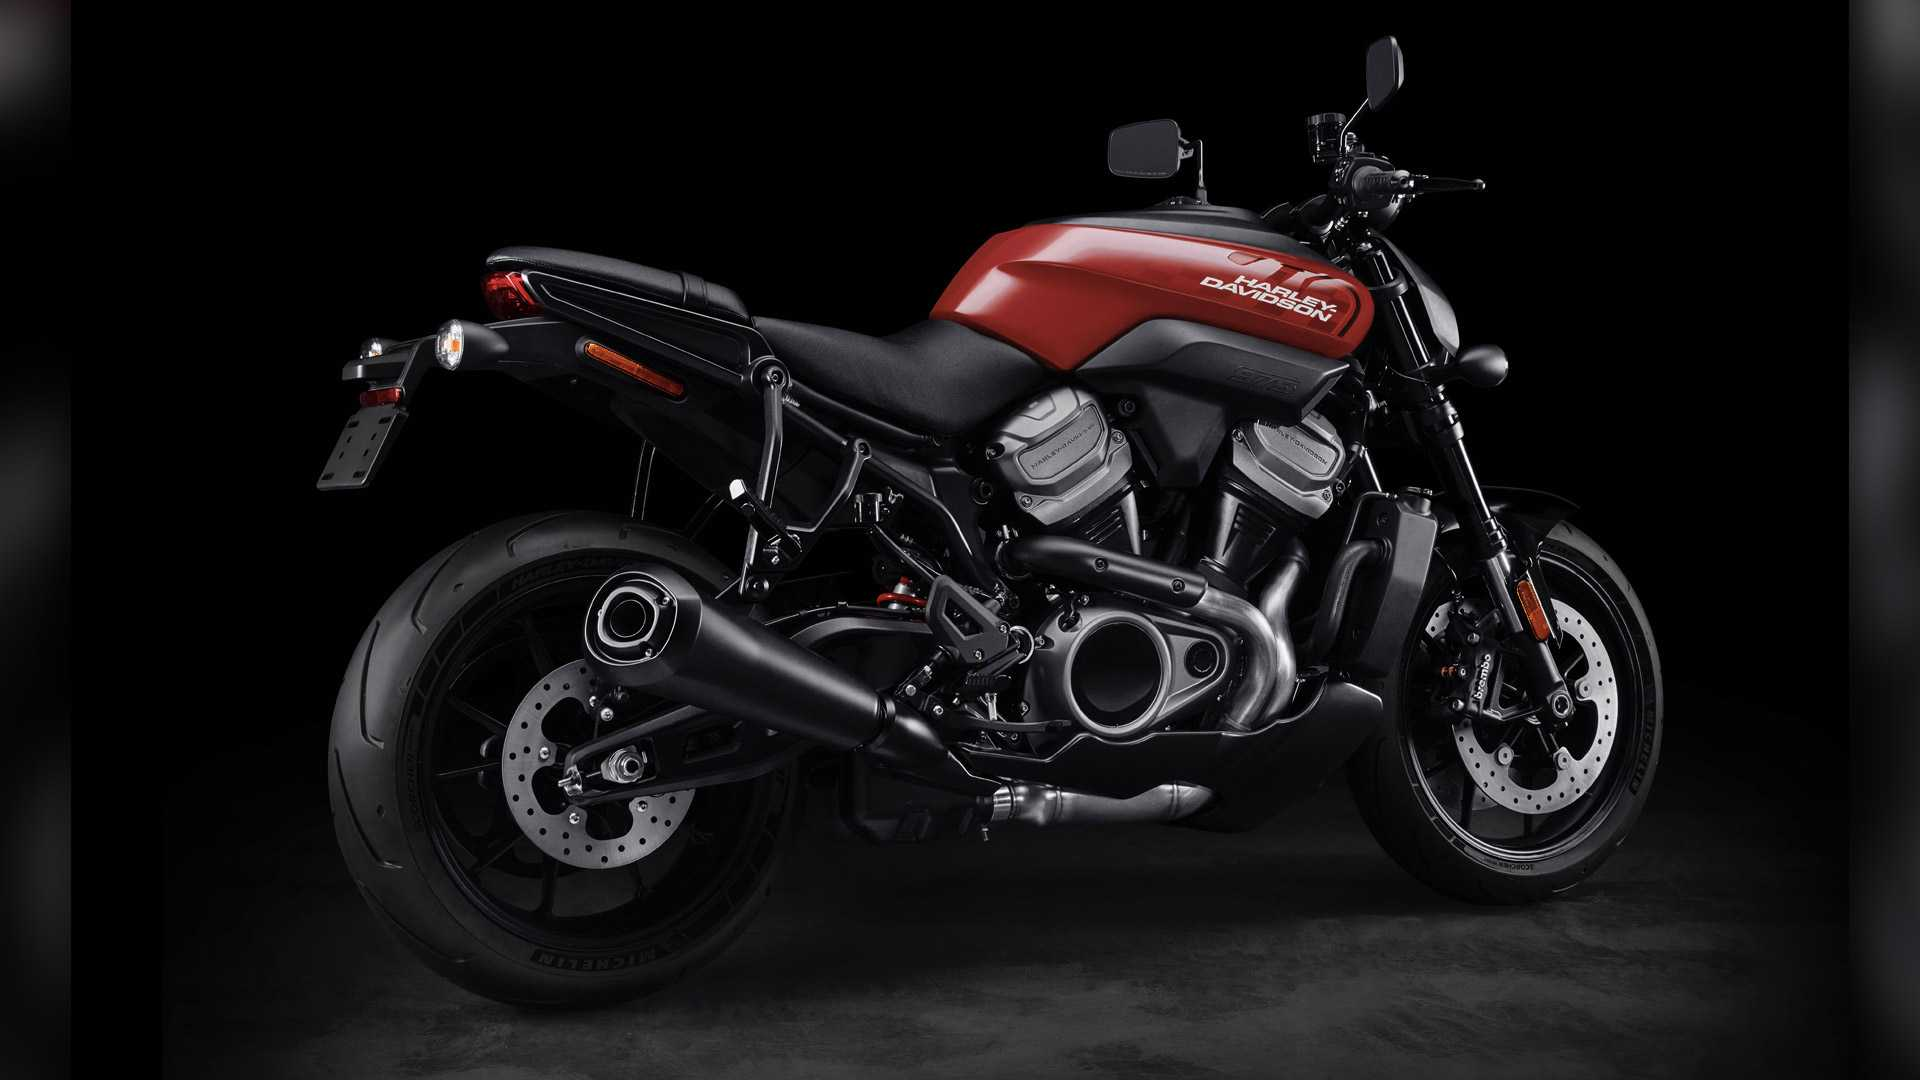 2021 Harley Specification Details